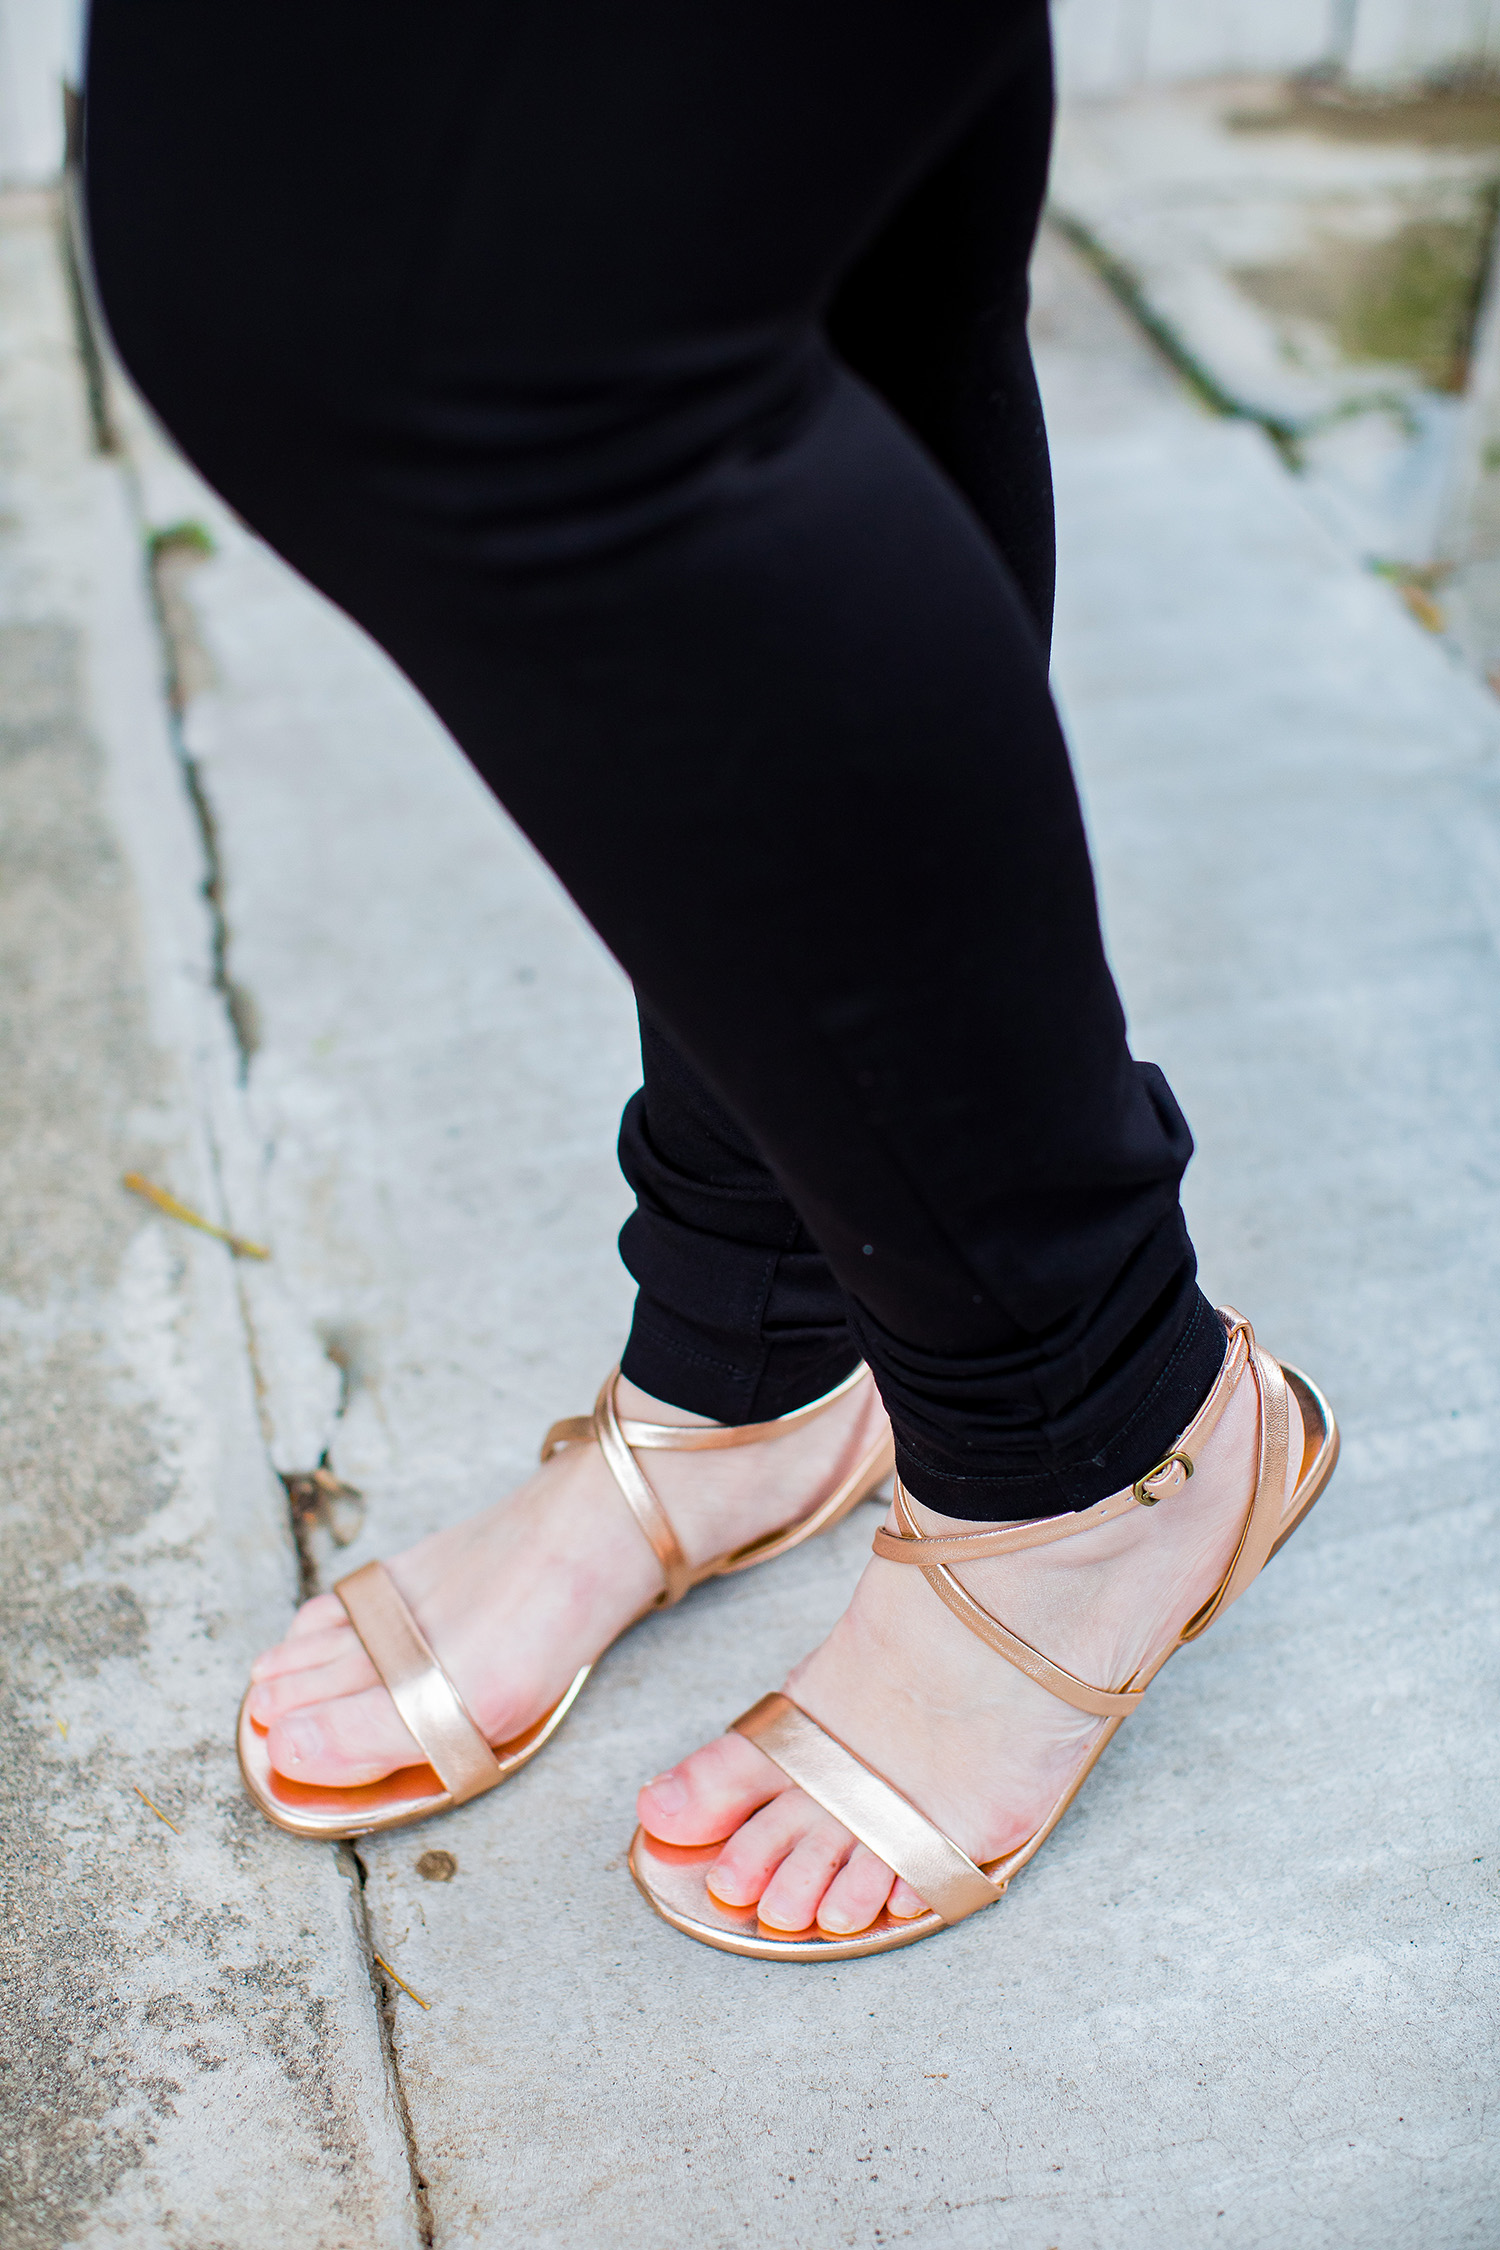 On the hunt for flat sandals? I love these Splendid Footwear Susannah Metallic Leather Sandals for spring! // Stitch Fix Review March 2019